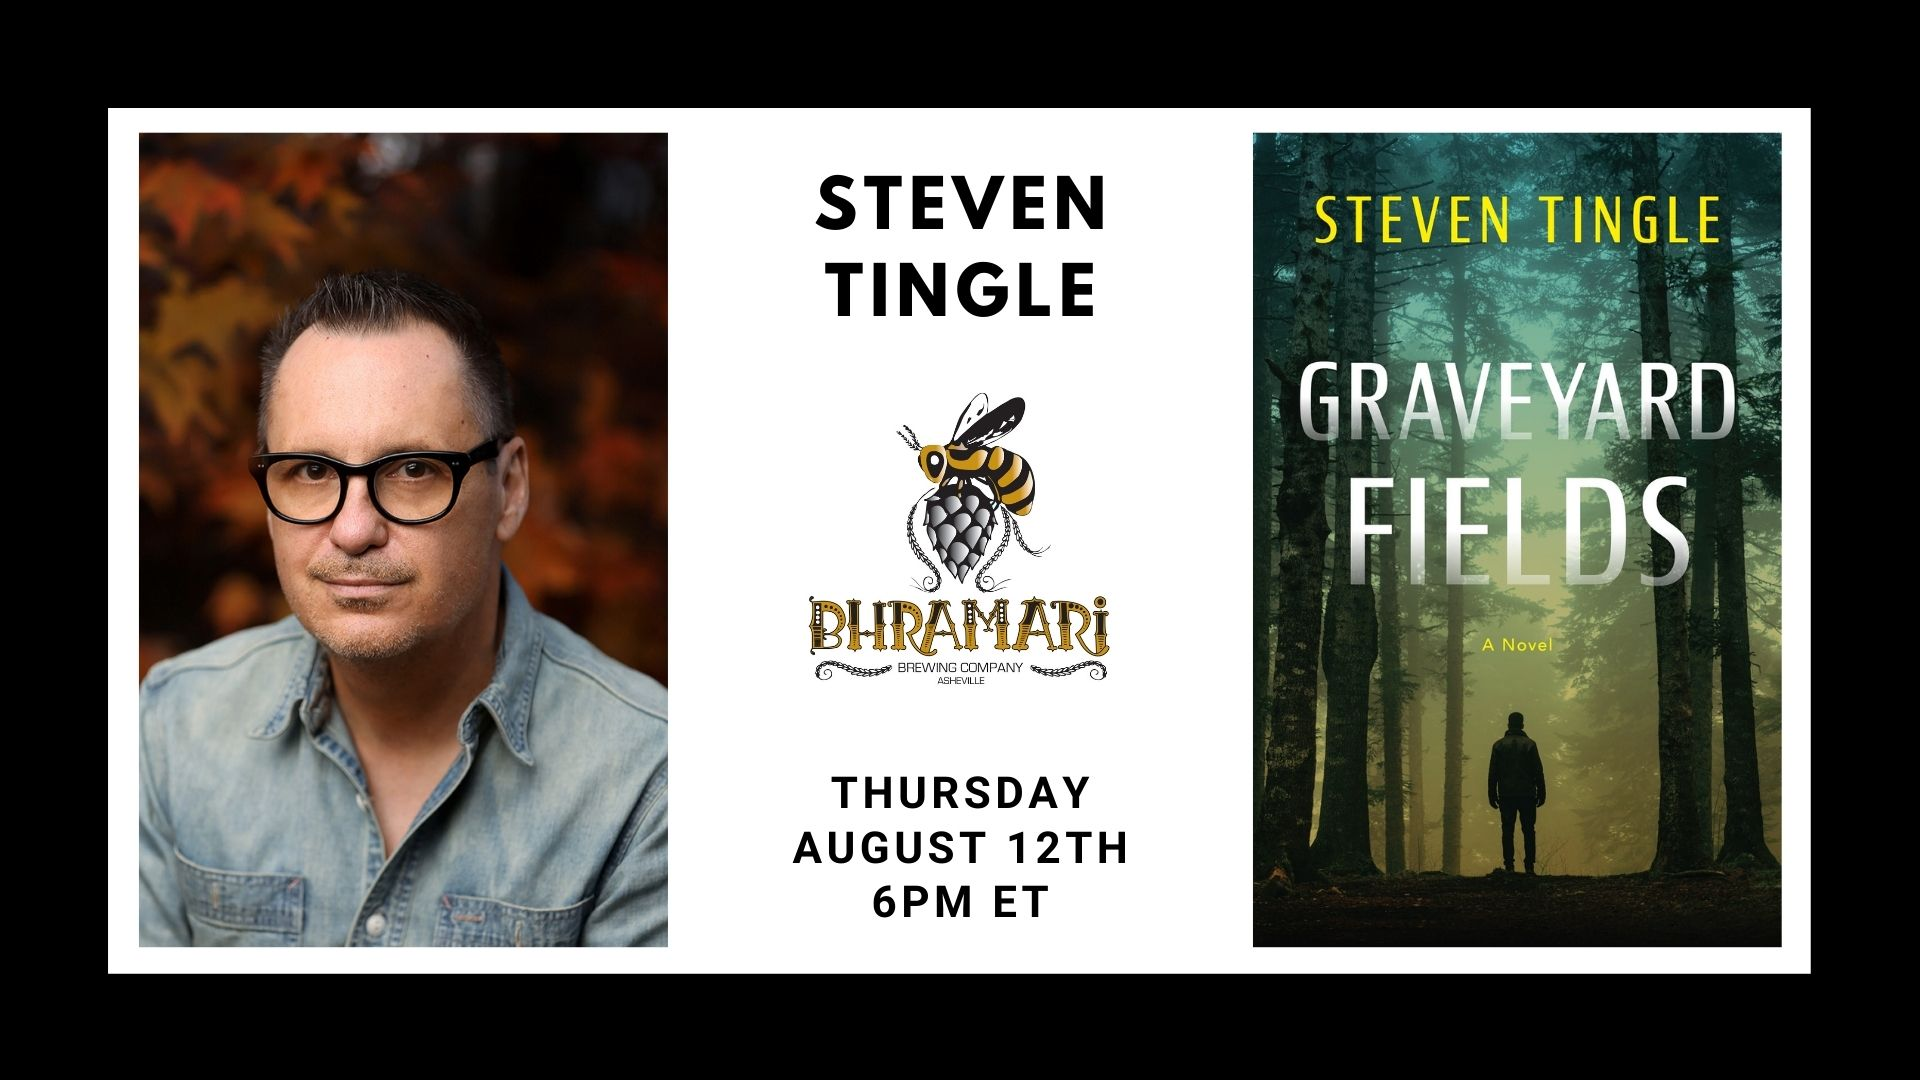 Image shows photo of author and cover of the book GRAVEYARD FIELDS for the event Steven Tingle at Bhramari Brewing on Thursday, August 12th, at 6 PM ET